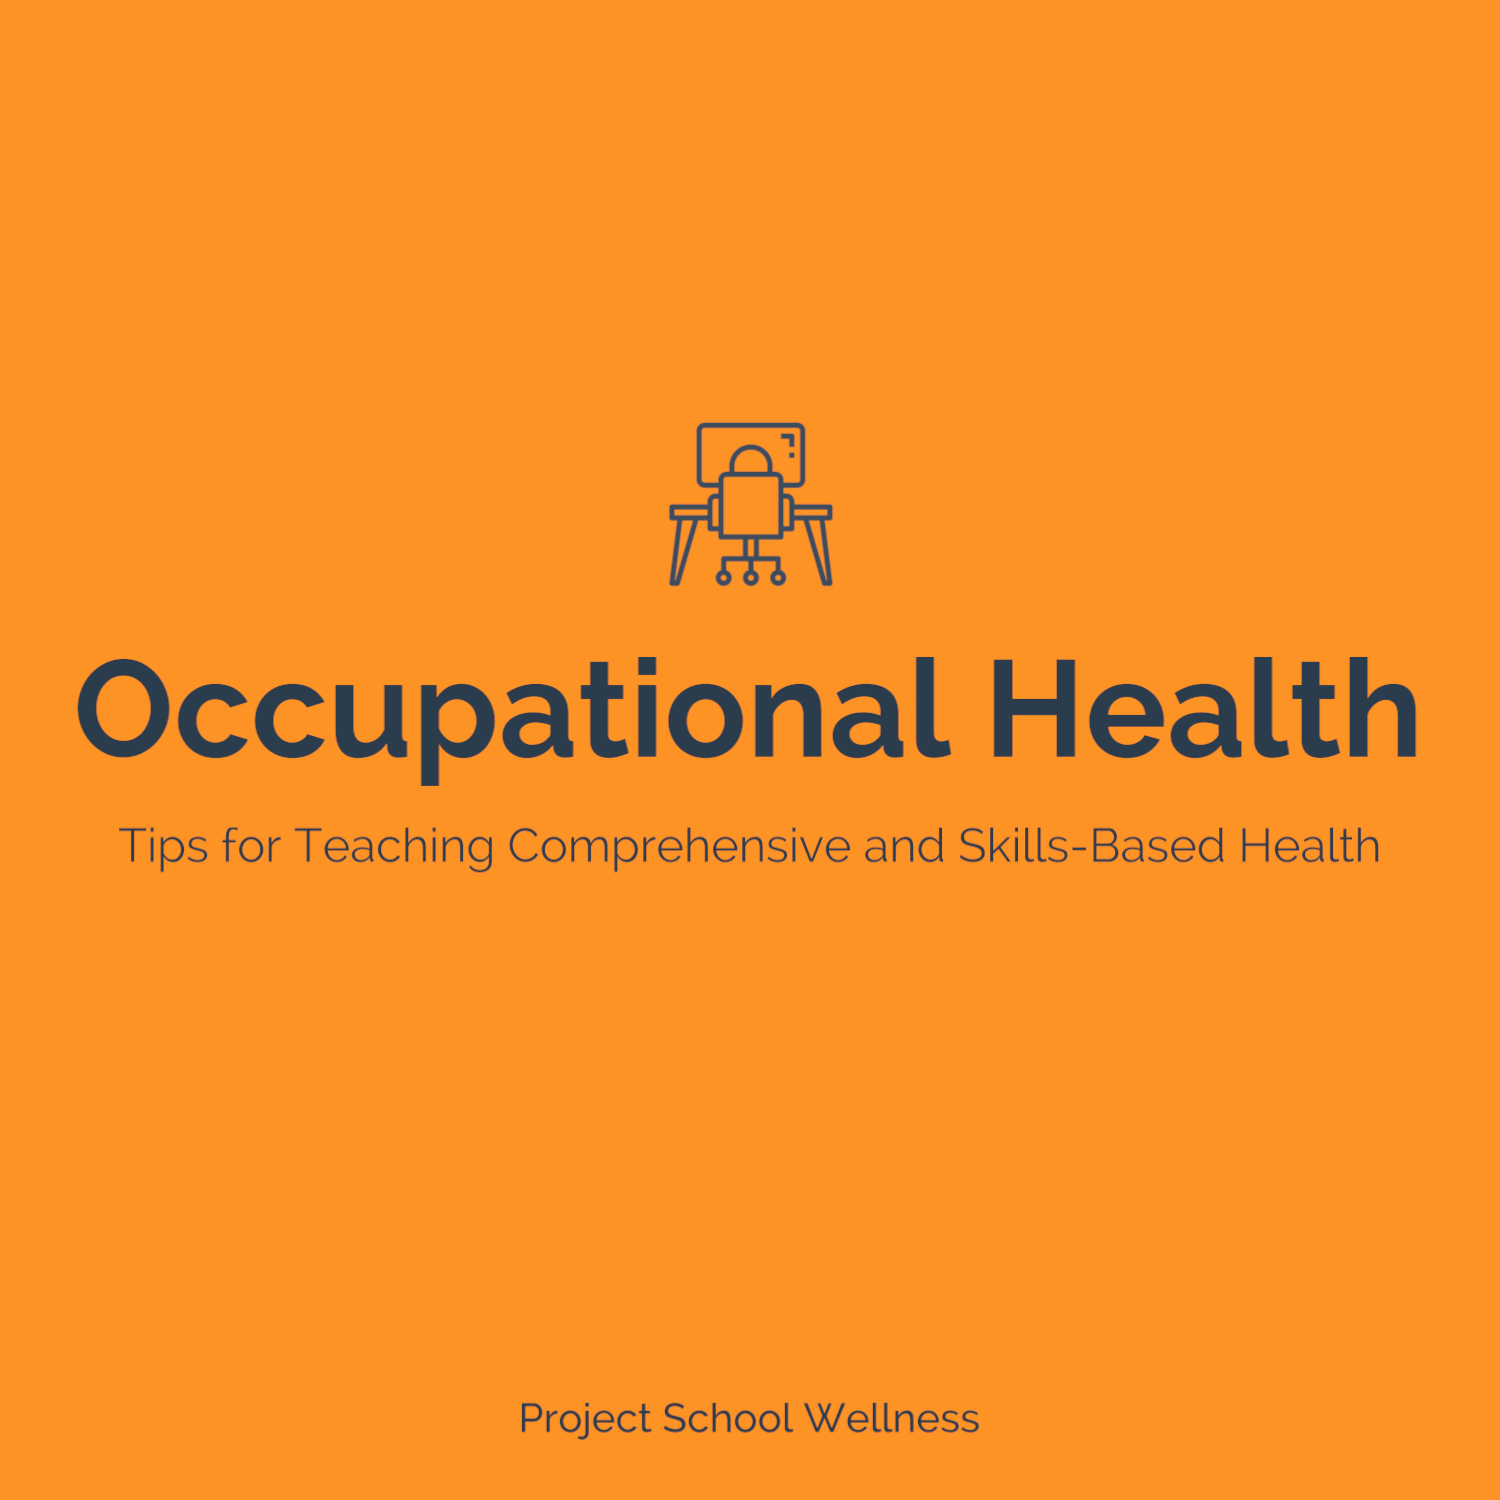 PSW Blog - Occupational Health